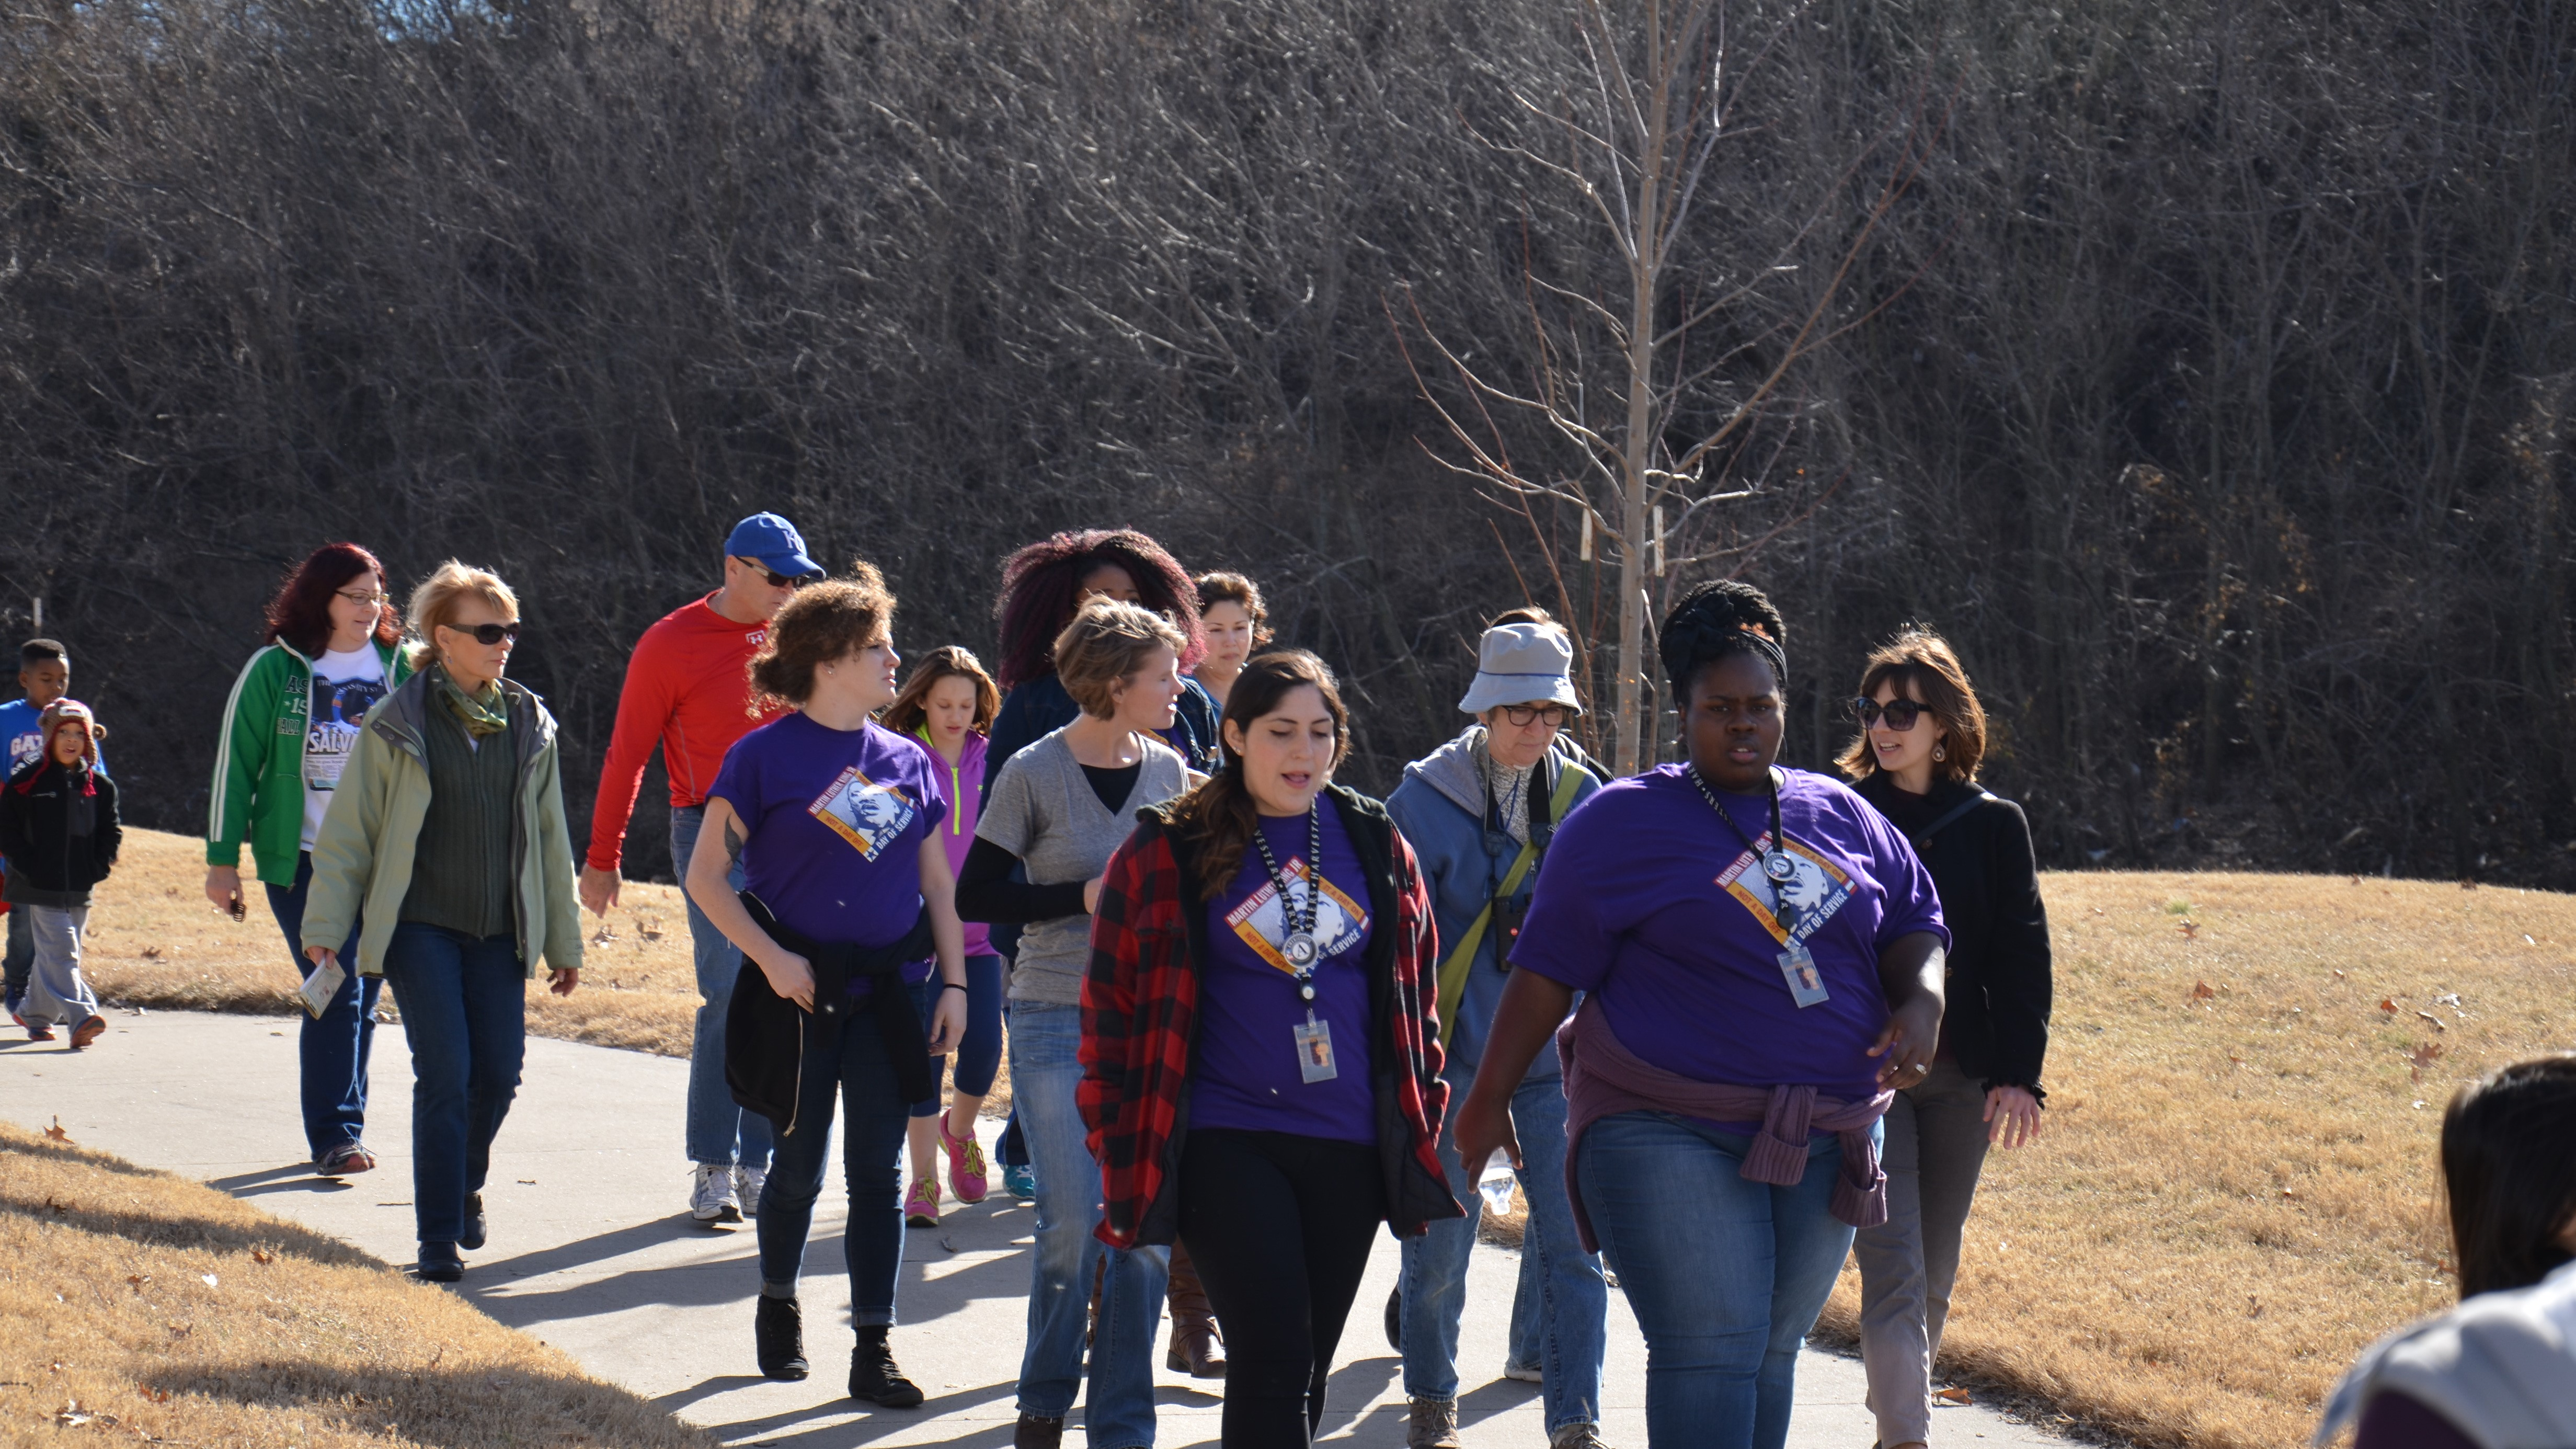 Discover Peace in Nature on MLK Day: Community Walk to Honor Dr. Martin Luther King, Jr.